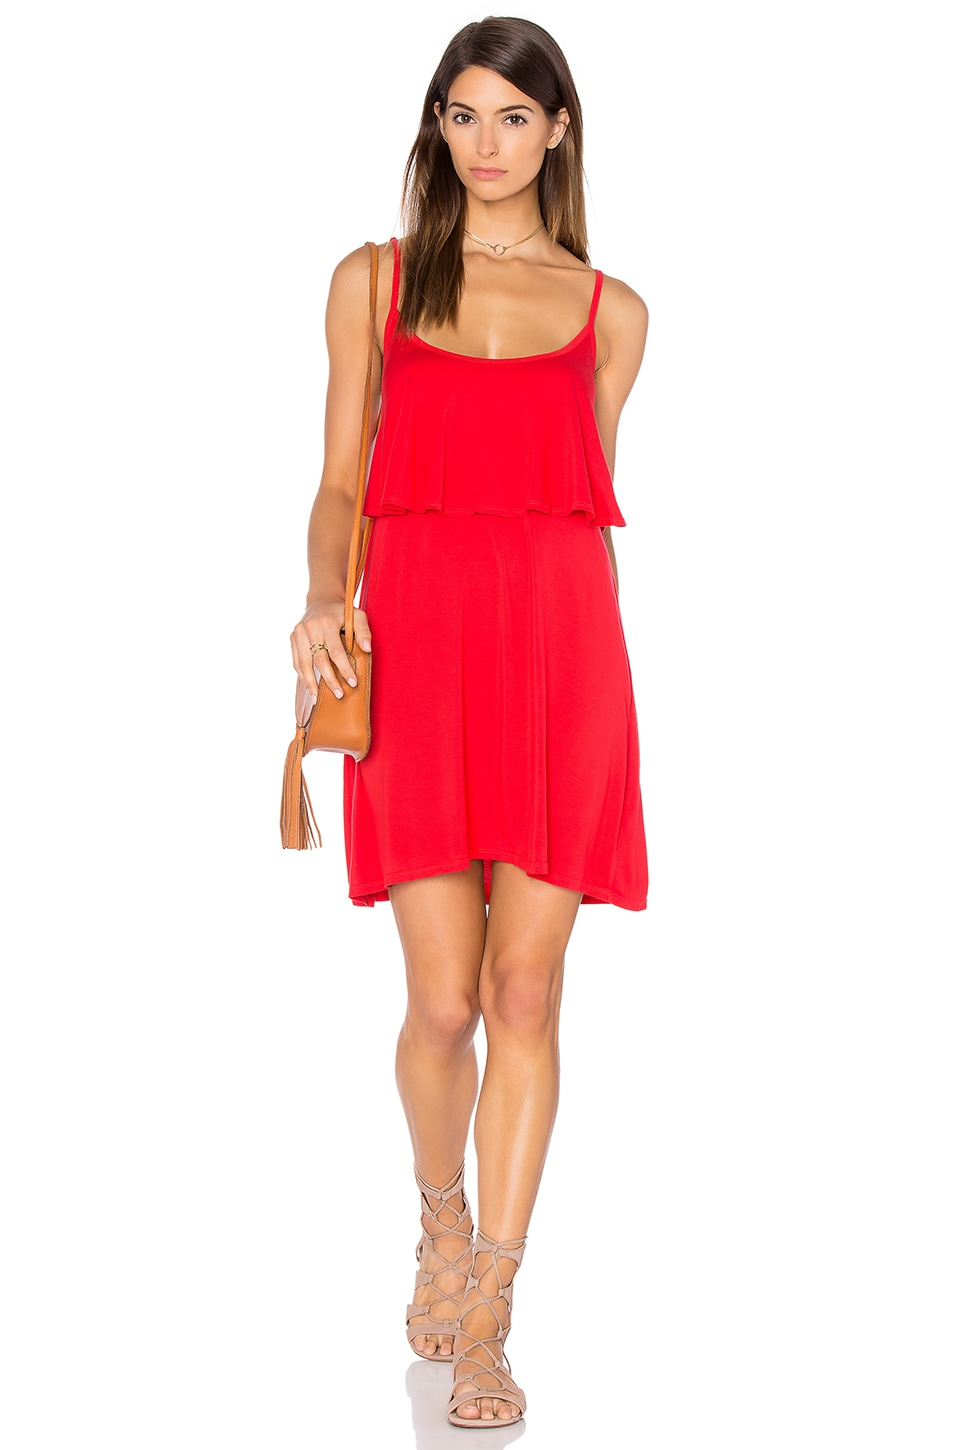 Marlow Fiesta Mini Dress